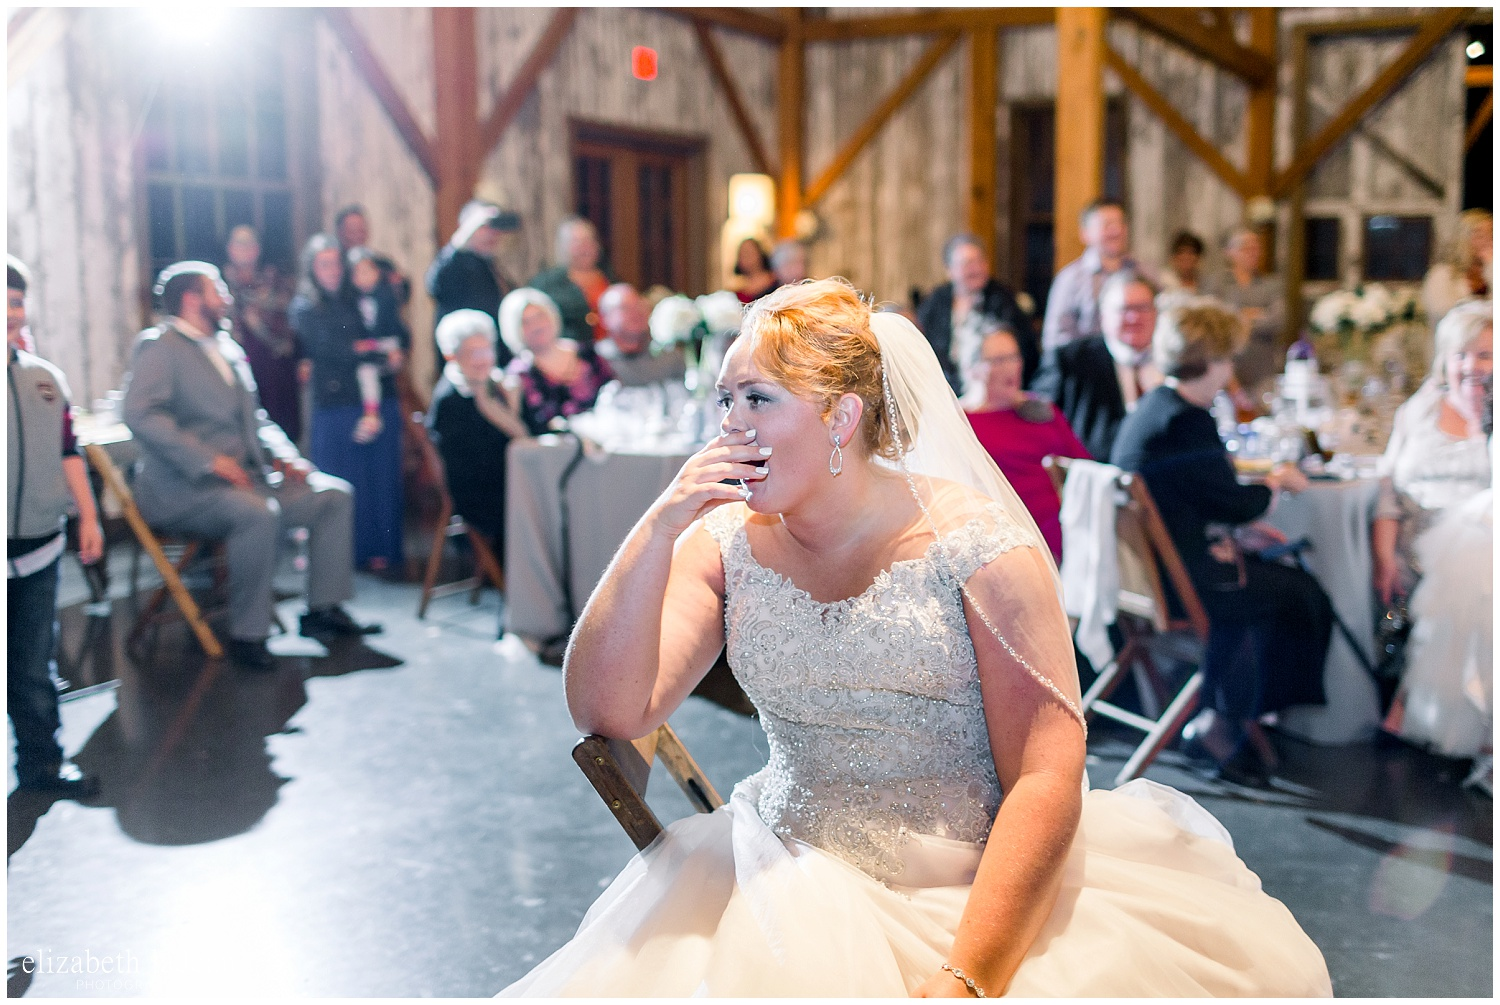 -behind-the-scenes-of-a-wedding-photographer-2018-elizabeth-ladean-photography-photo_3587.jpg